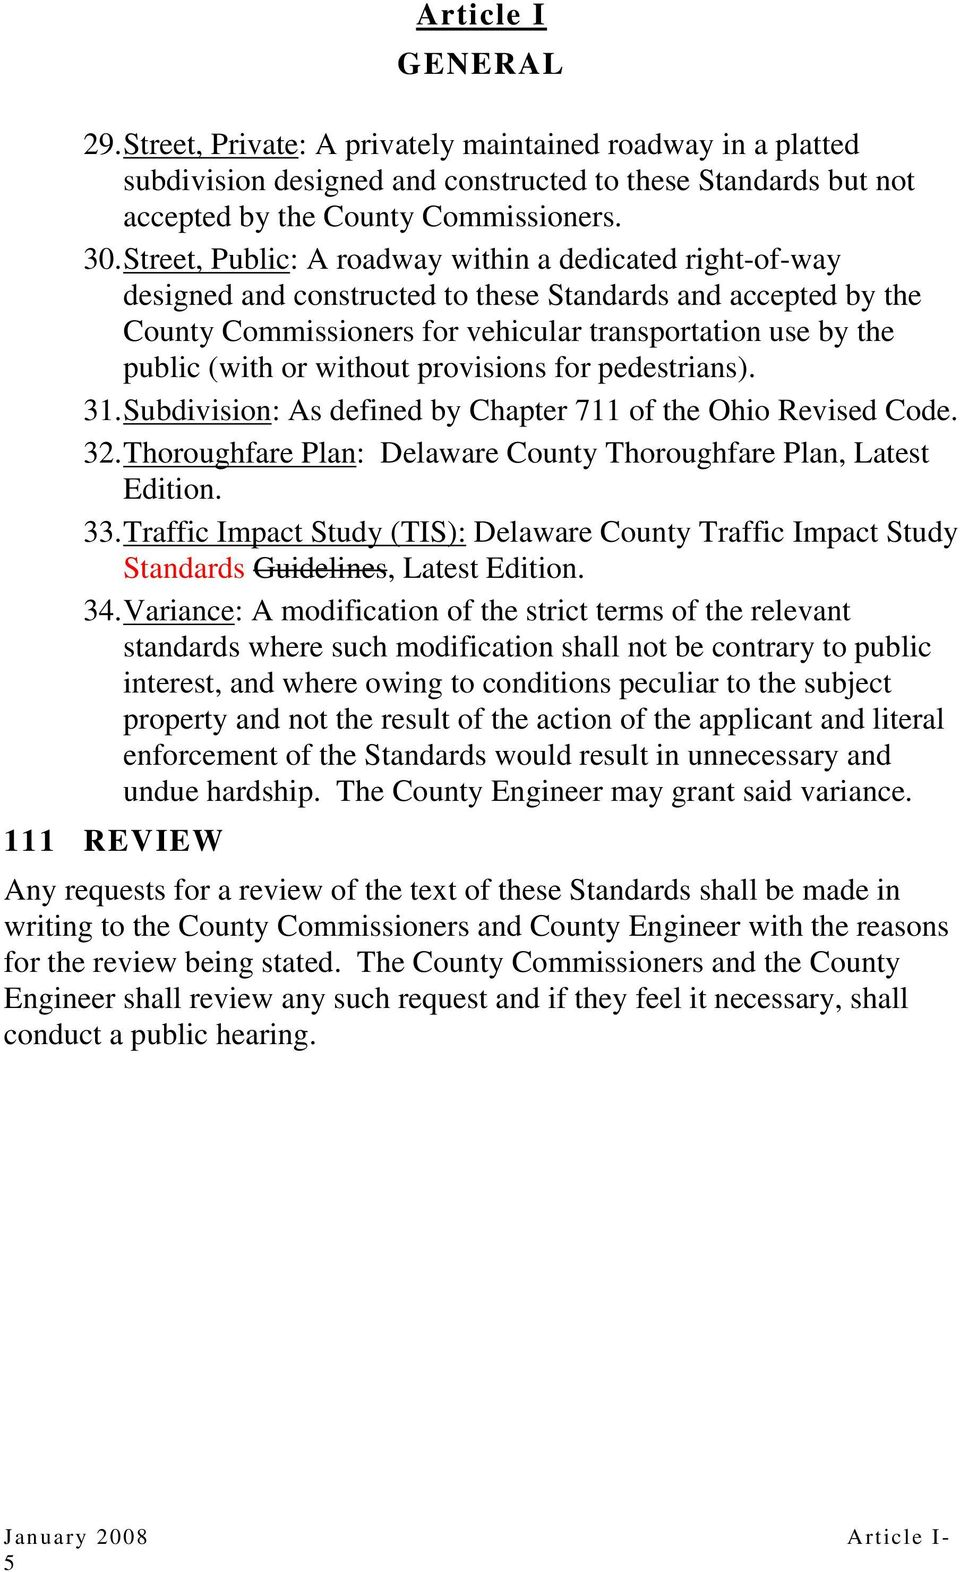 without provisions for pedestrians). 31. Subdivision: As defined by Chapter 711 of the Ohio Revised Code. 32. Thoroughfare Plan: Delaware County Thoroughfare Plan, Latest Edition. 33.